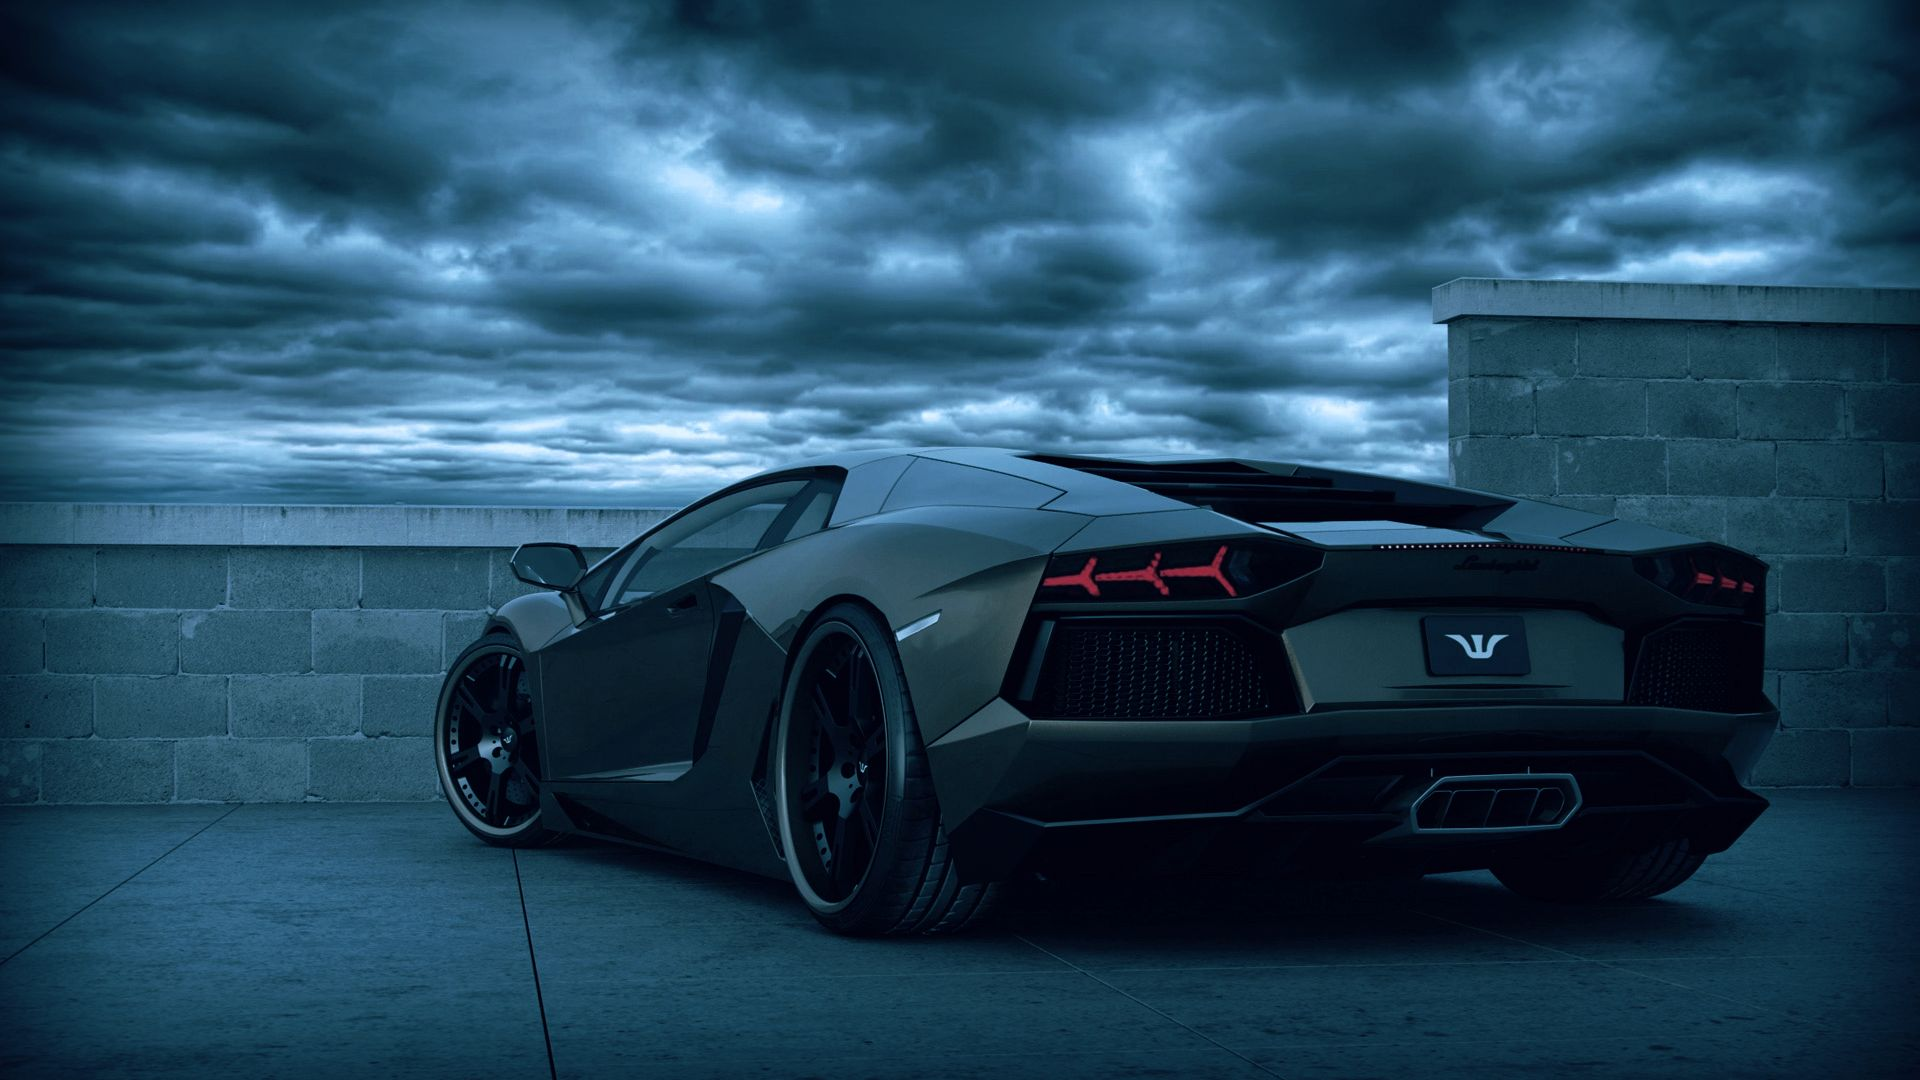 Lamborghini dark wallpapers hd pixelstalk net for New cool images